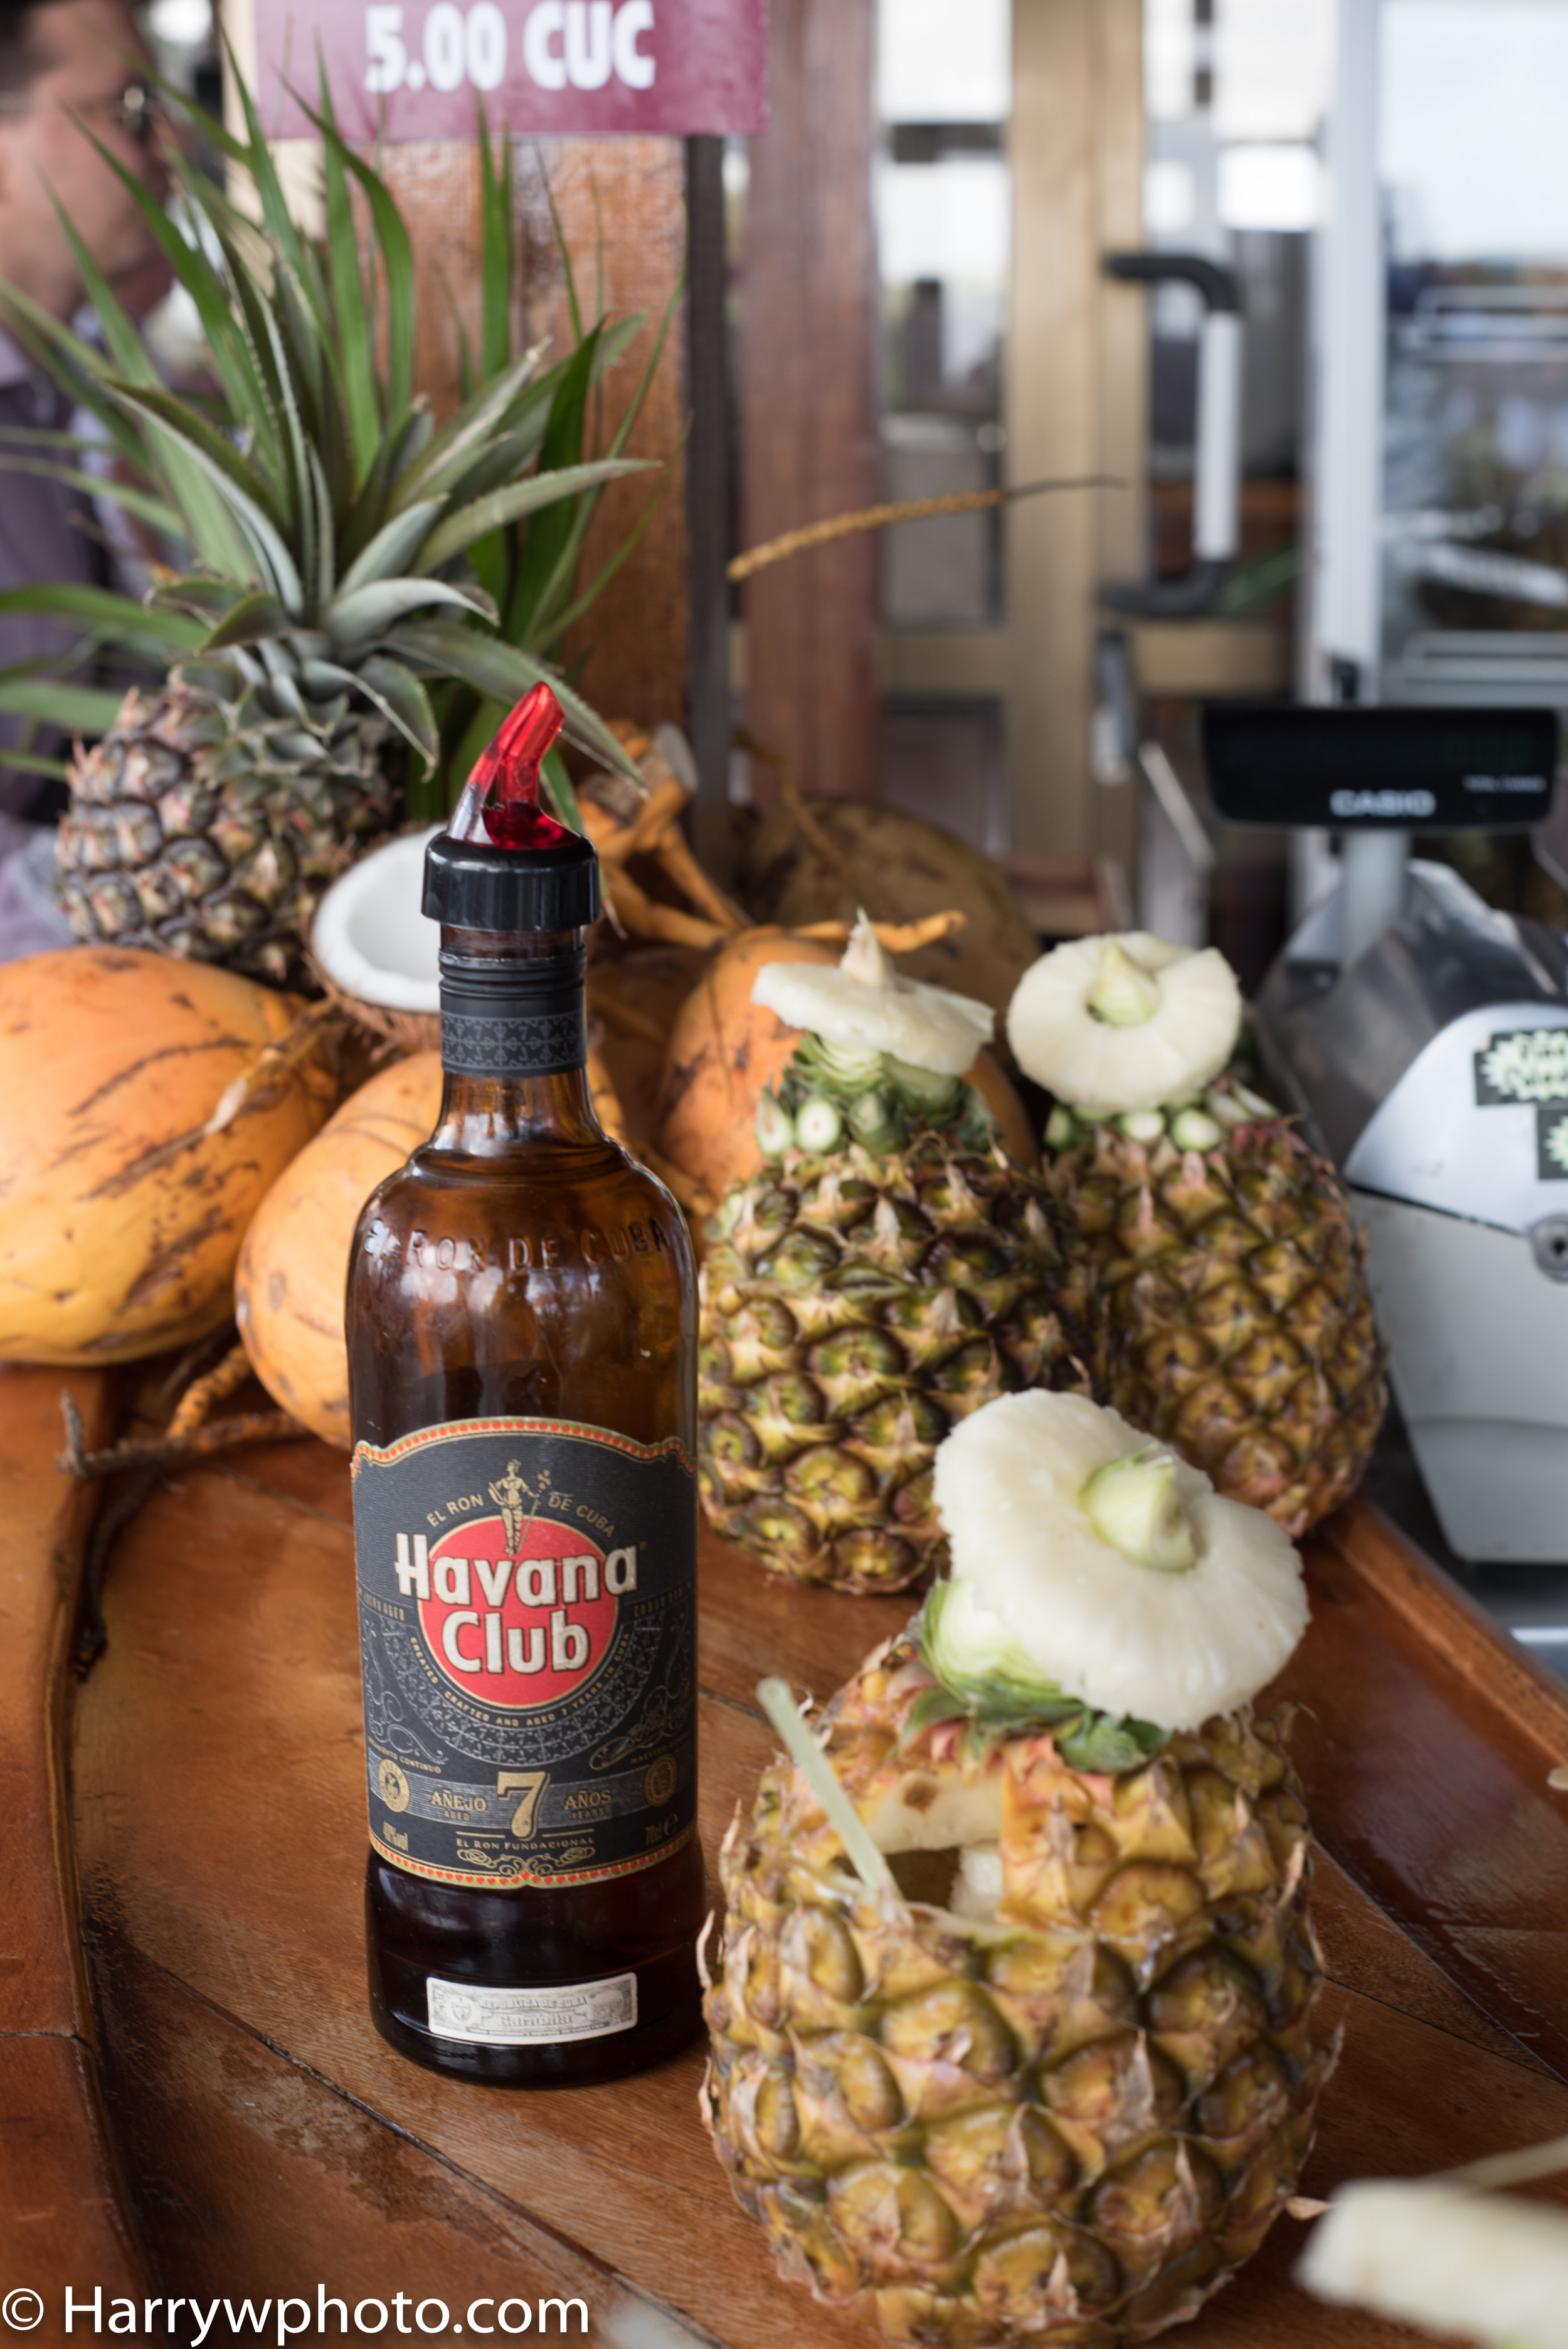 Havana club 7 year aged rum pina colada in a fresh pineapple